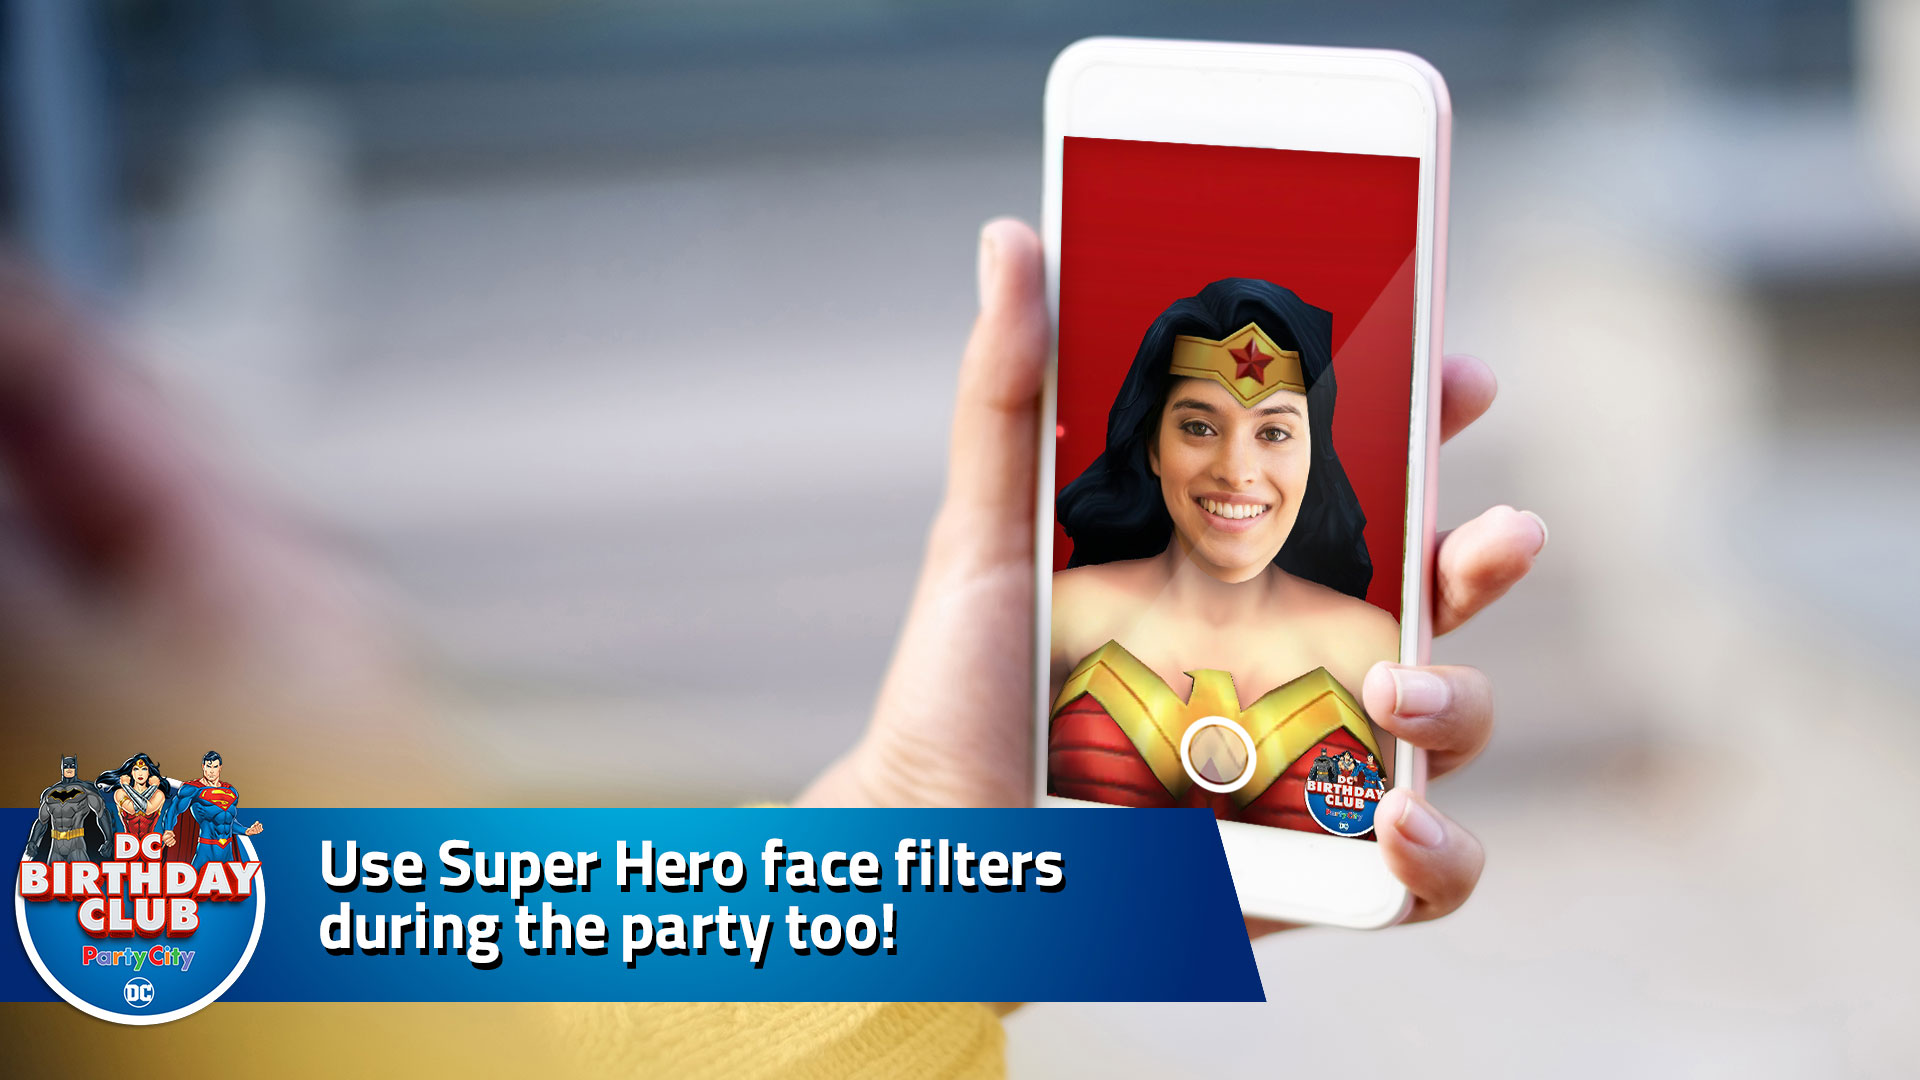 Use Super Hero face filters during the party too!